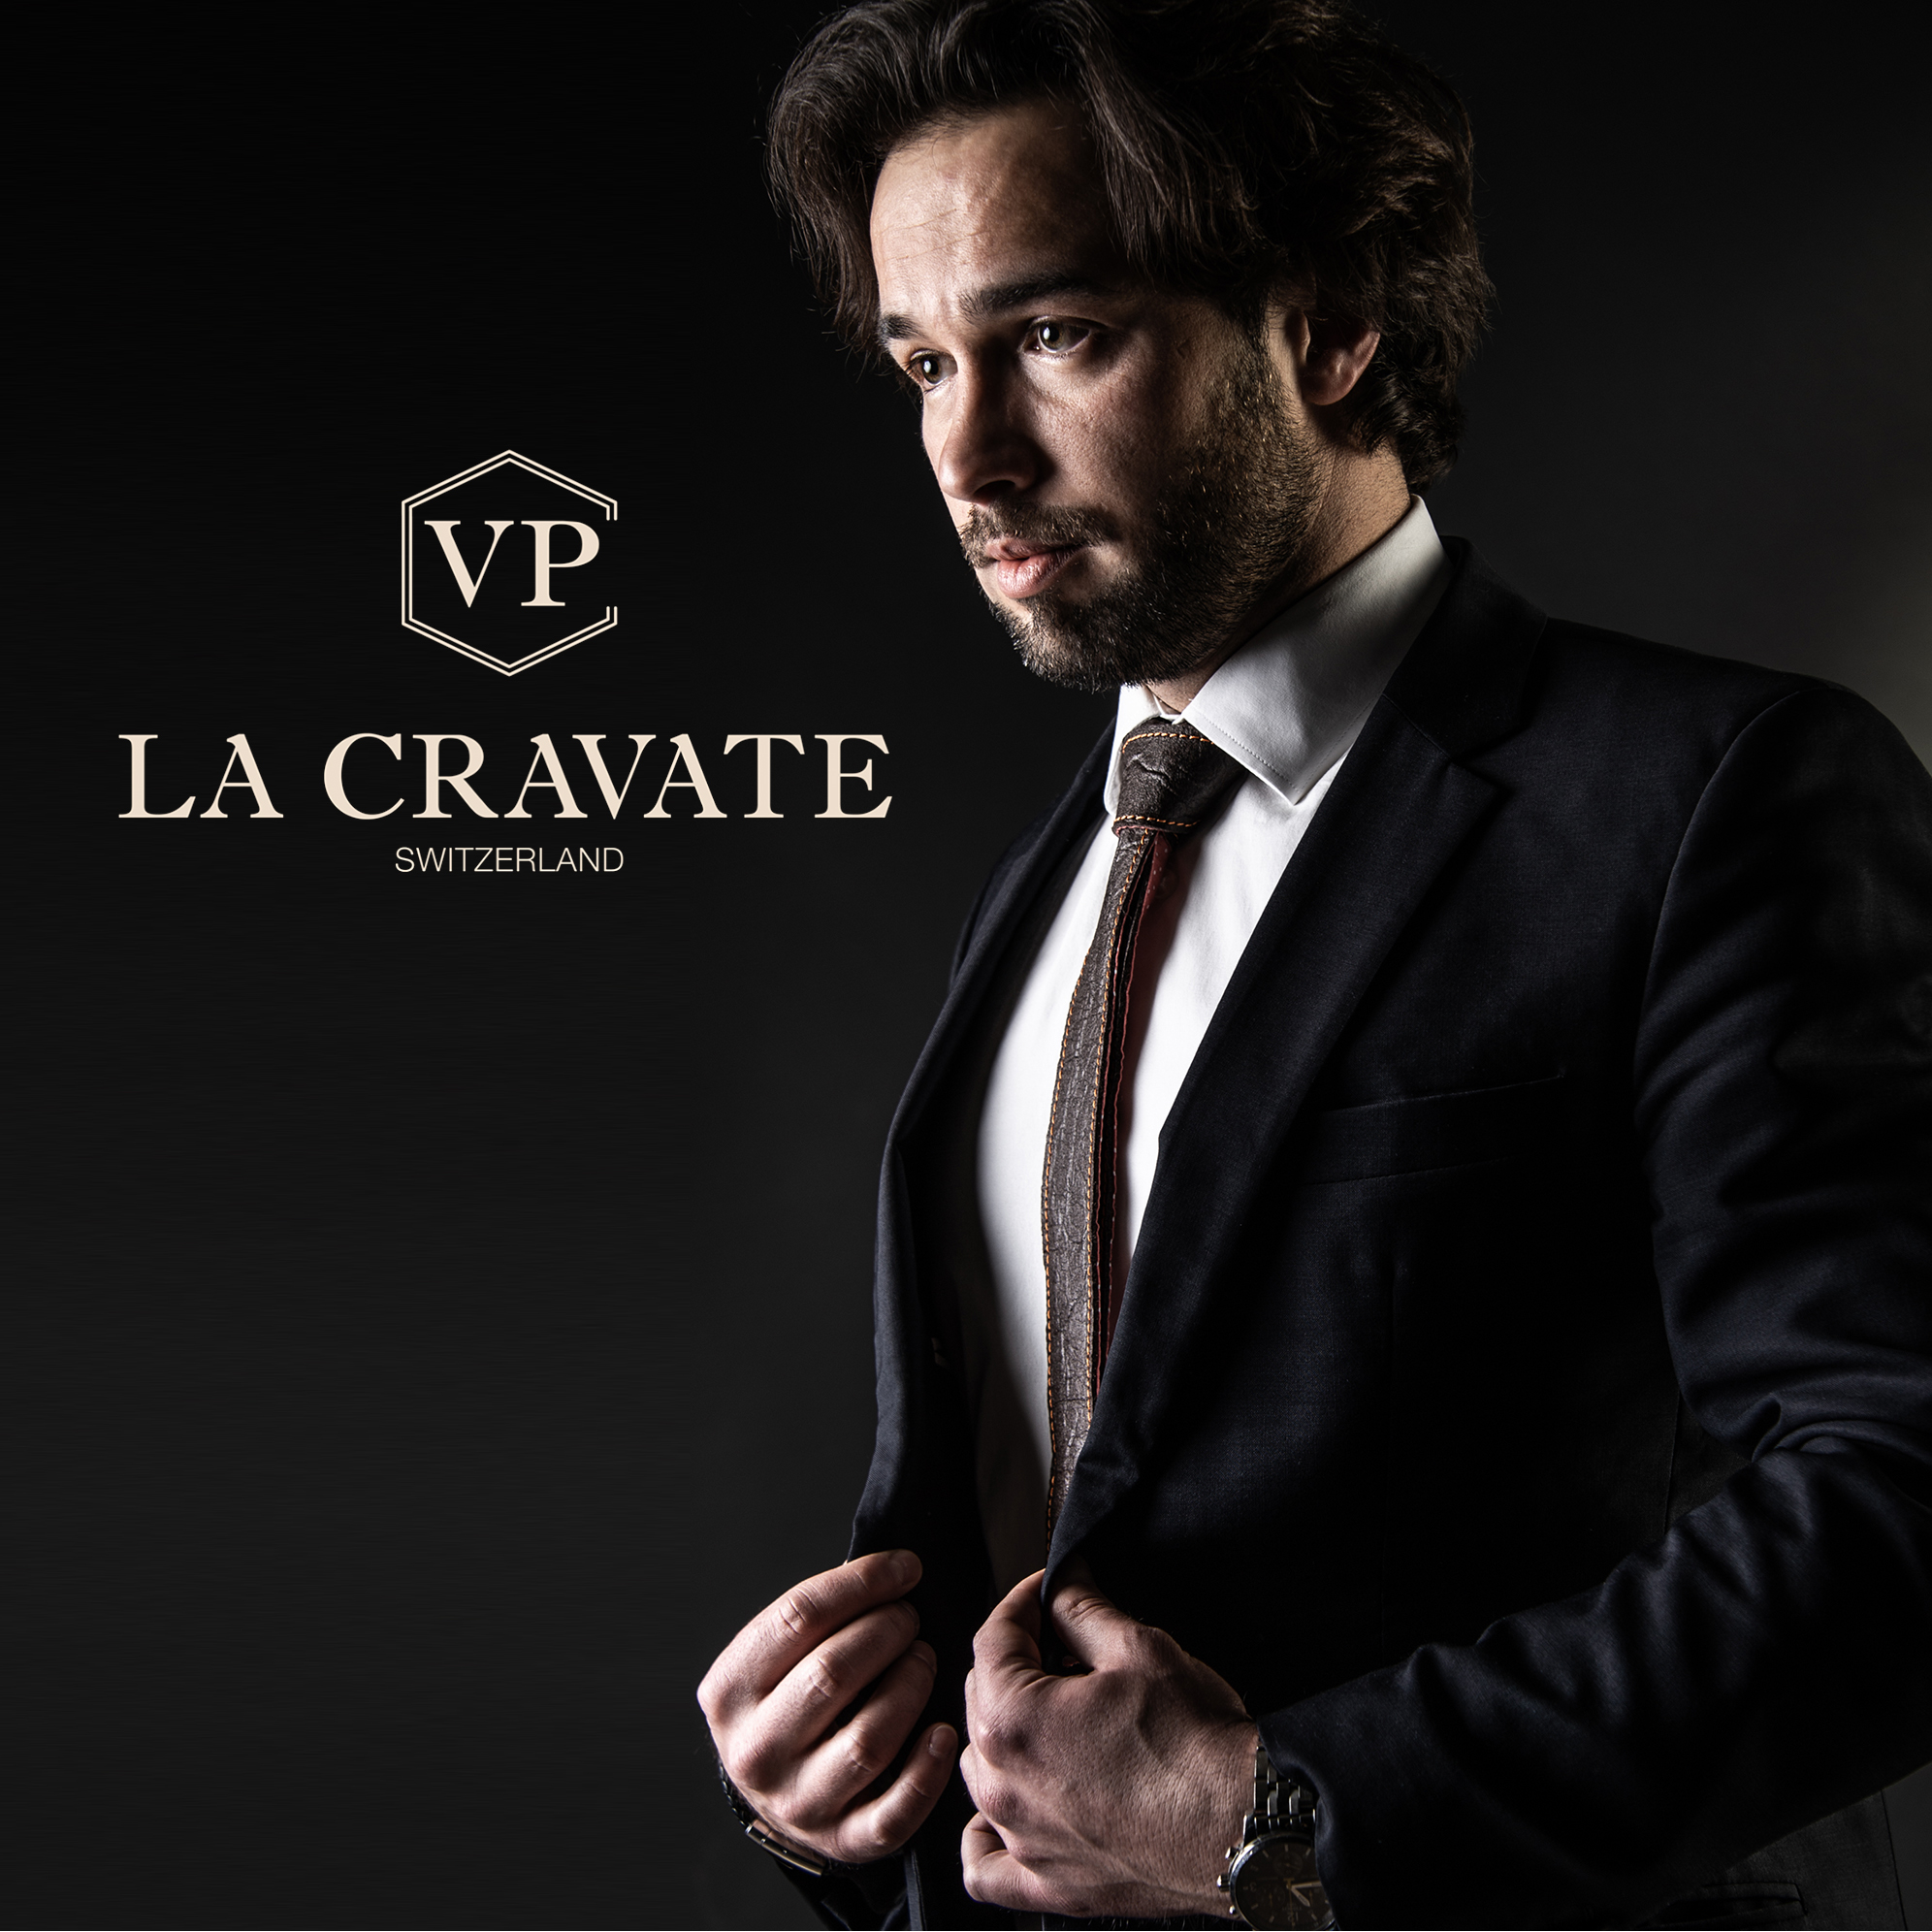 La Cravate VP